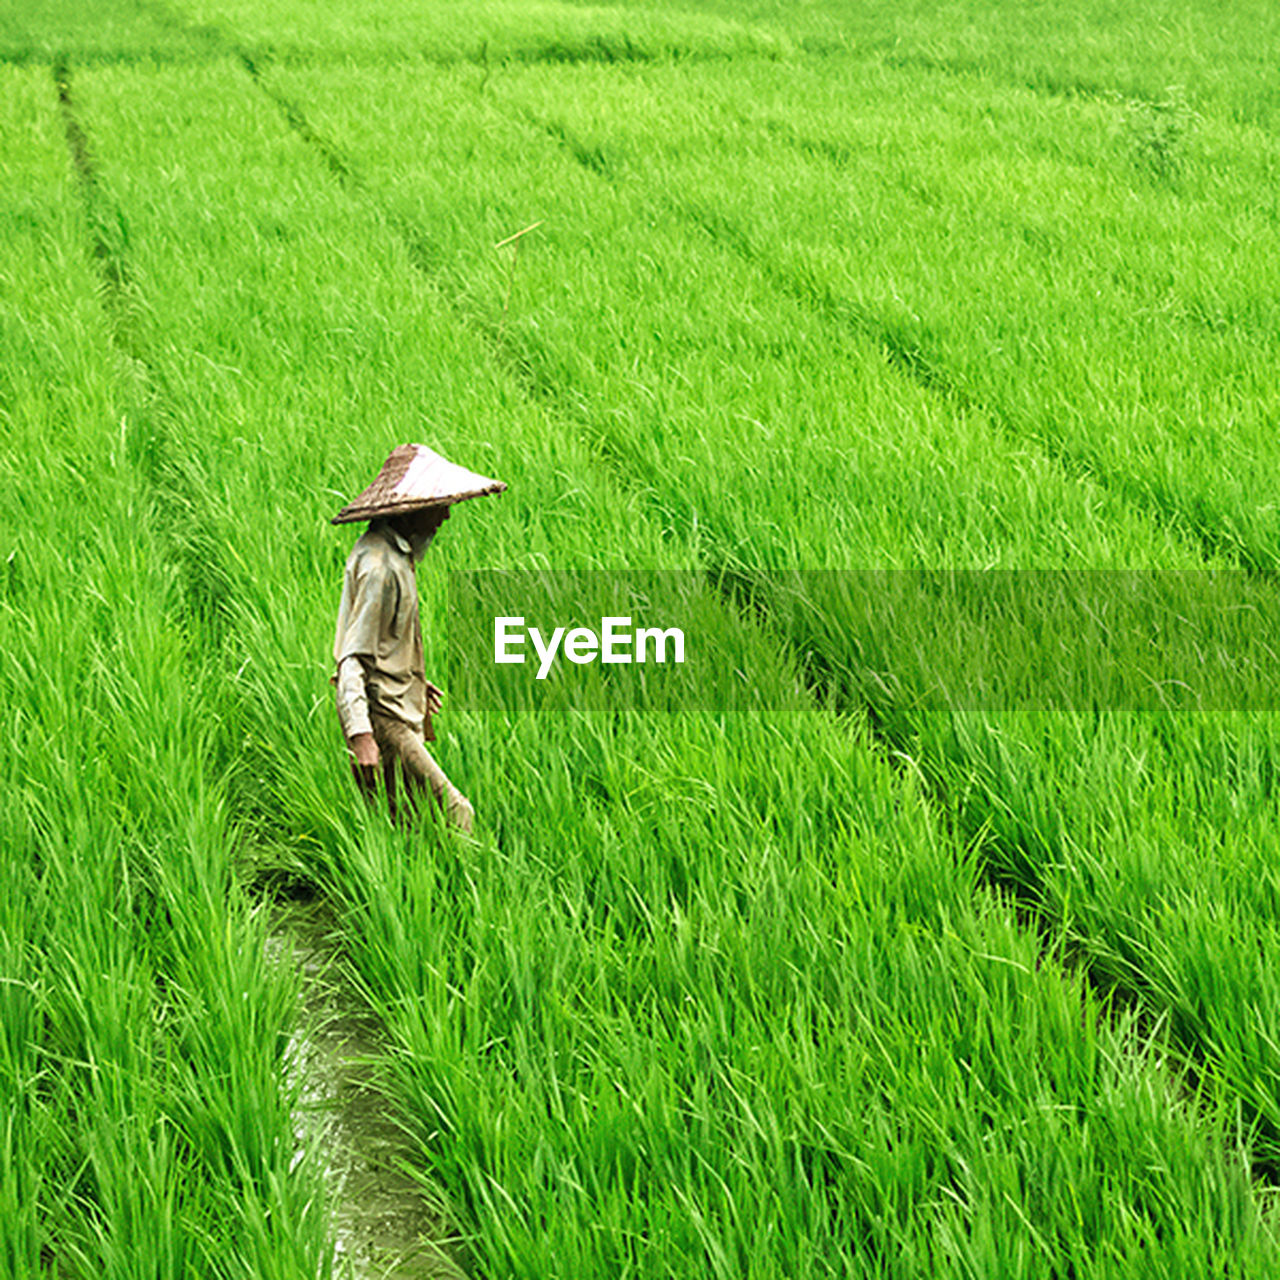 agriculture, hat, field, grass, asian style conical hat, farm, growth, farmer, green color, cultivated land, nature, real people, crop, rural scene, rice paddy, rice - cereal plant, outdoors, one person, cereal plant, women, occupation, day, working, beauty in nature, lifestyles, scenics, men, tea crop, adult, people